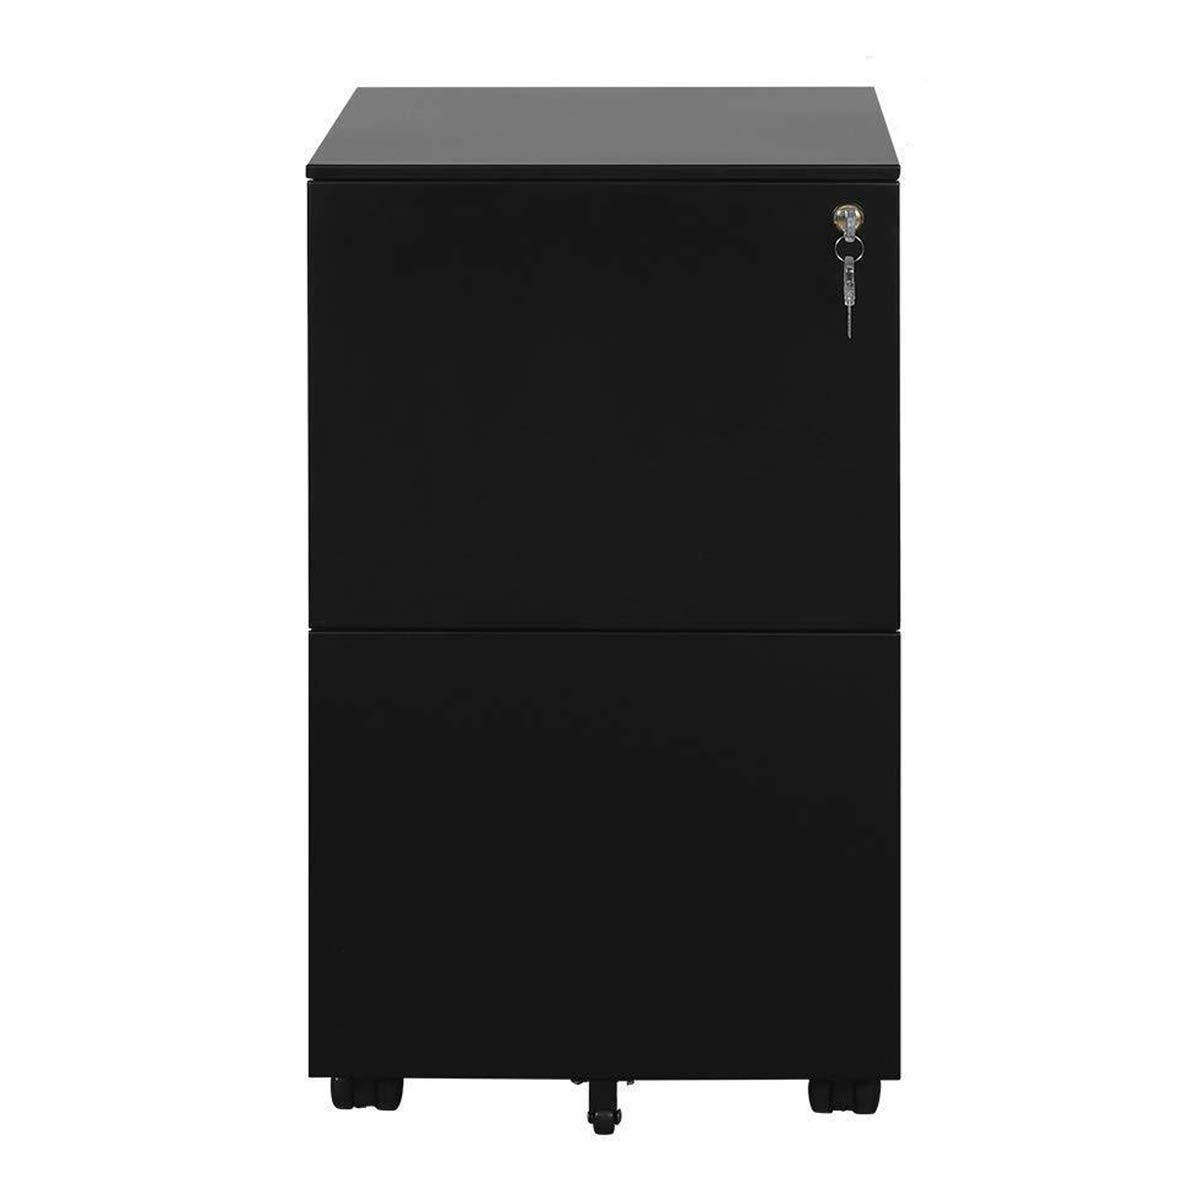 DEVAISE Metal Mobile File Cabinet with Lock (2 Drawer Black)